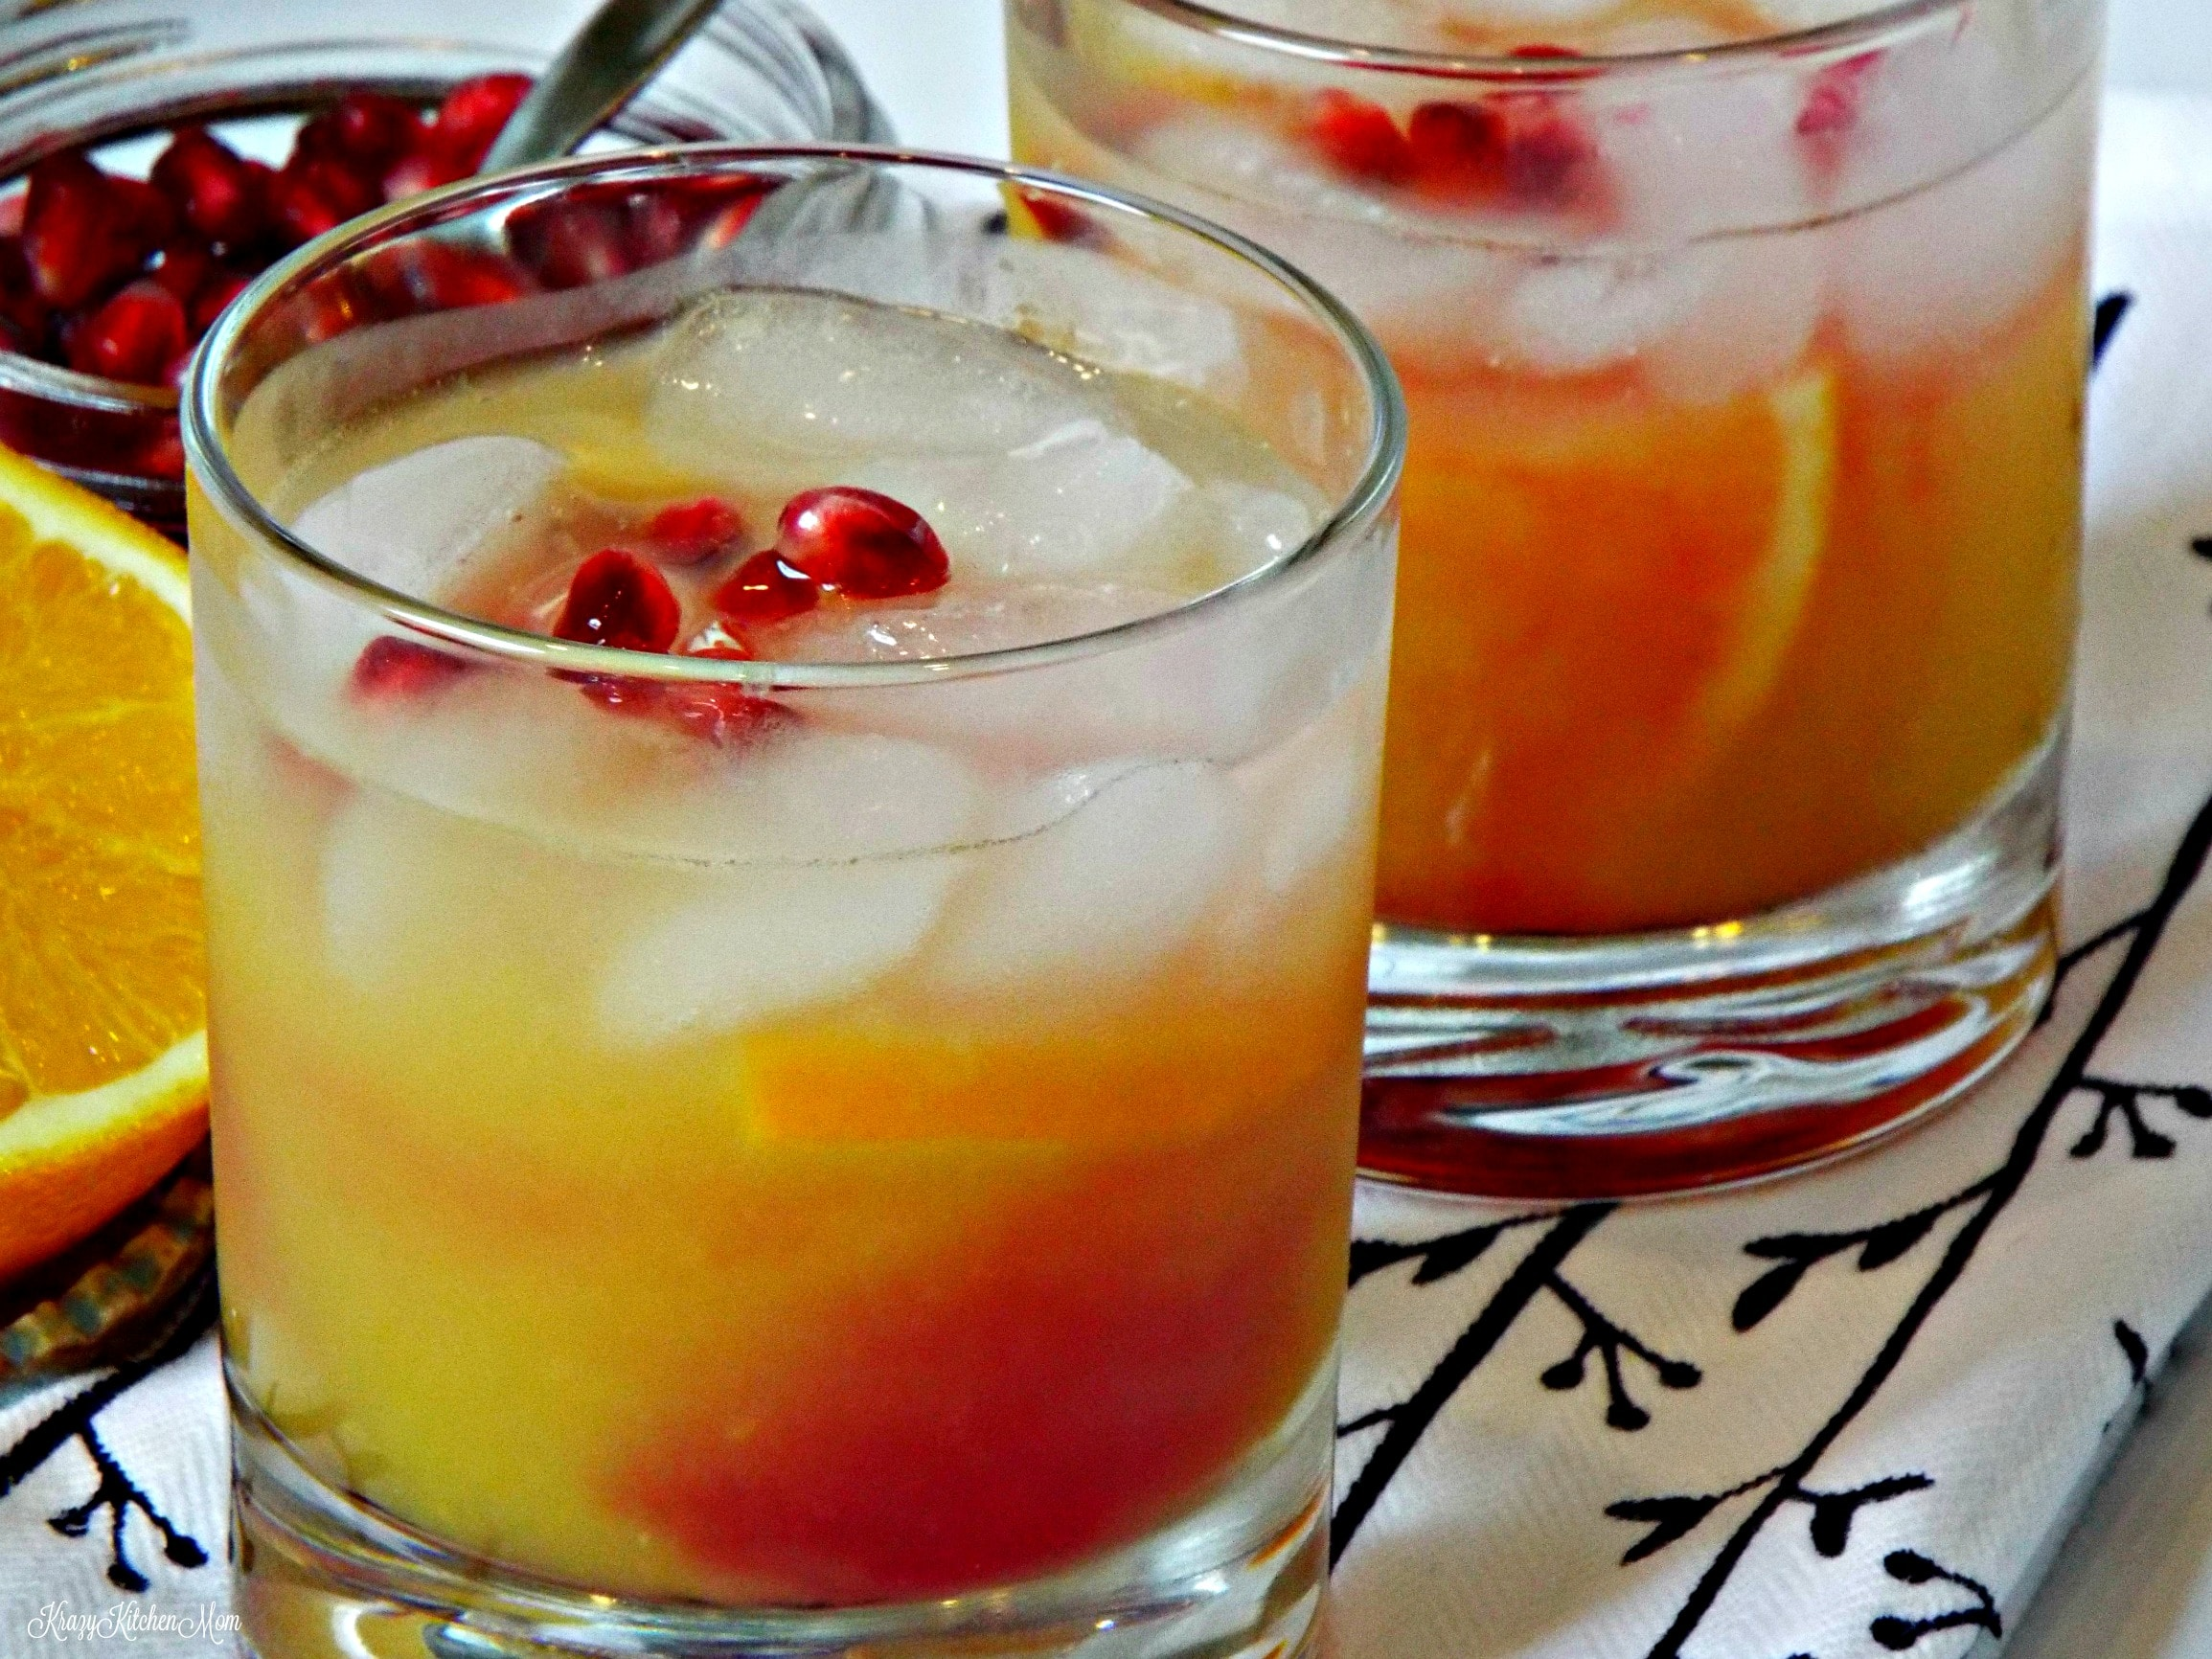 a cocktail with cranberry garnish